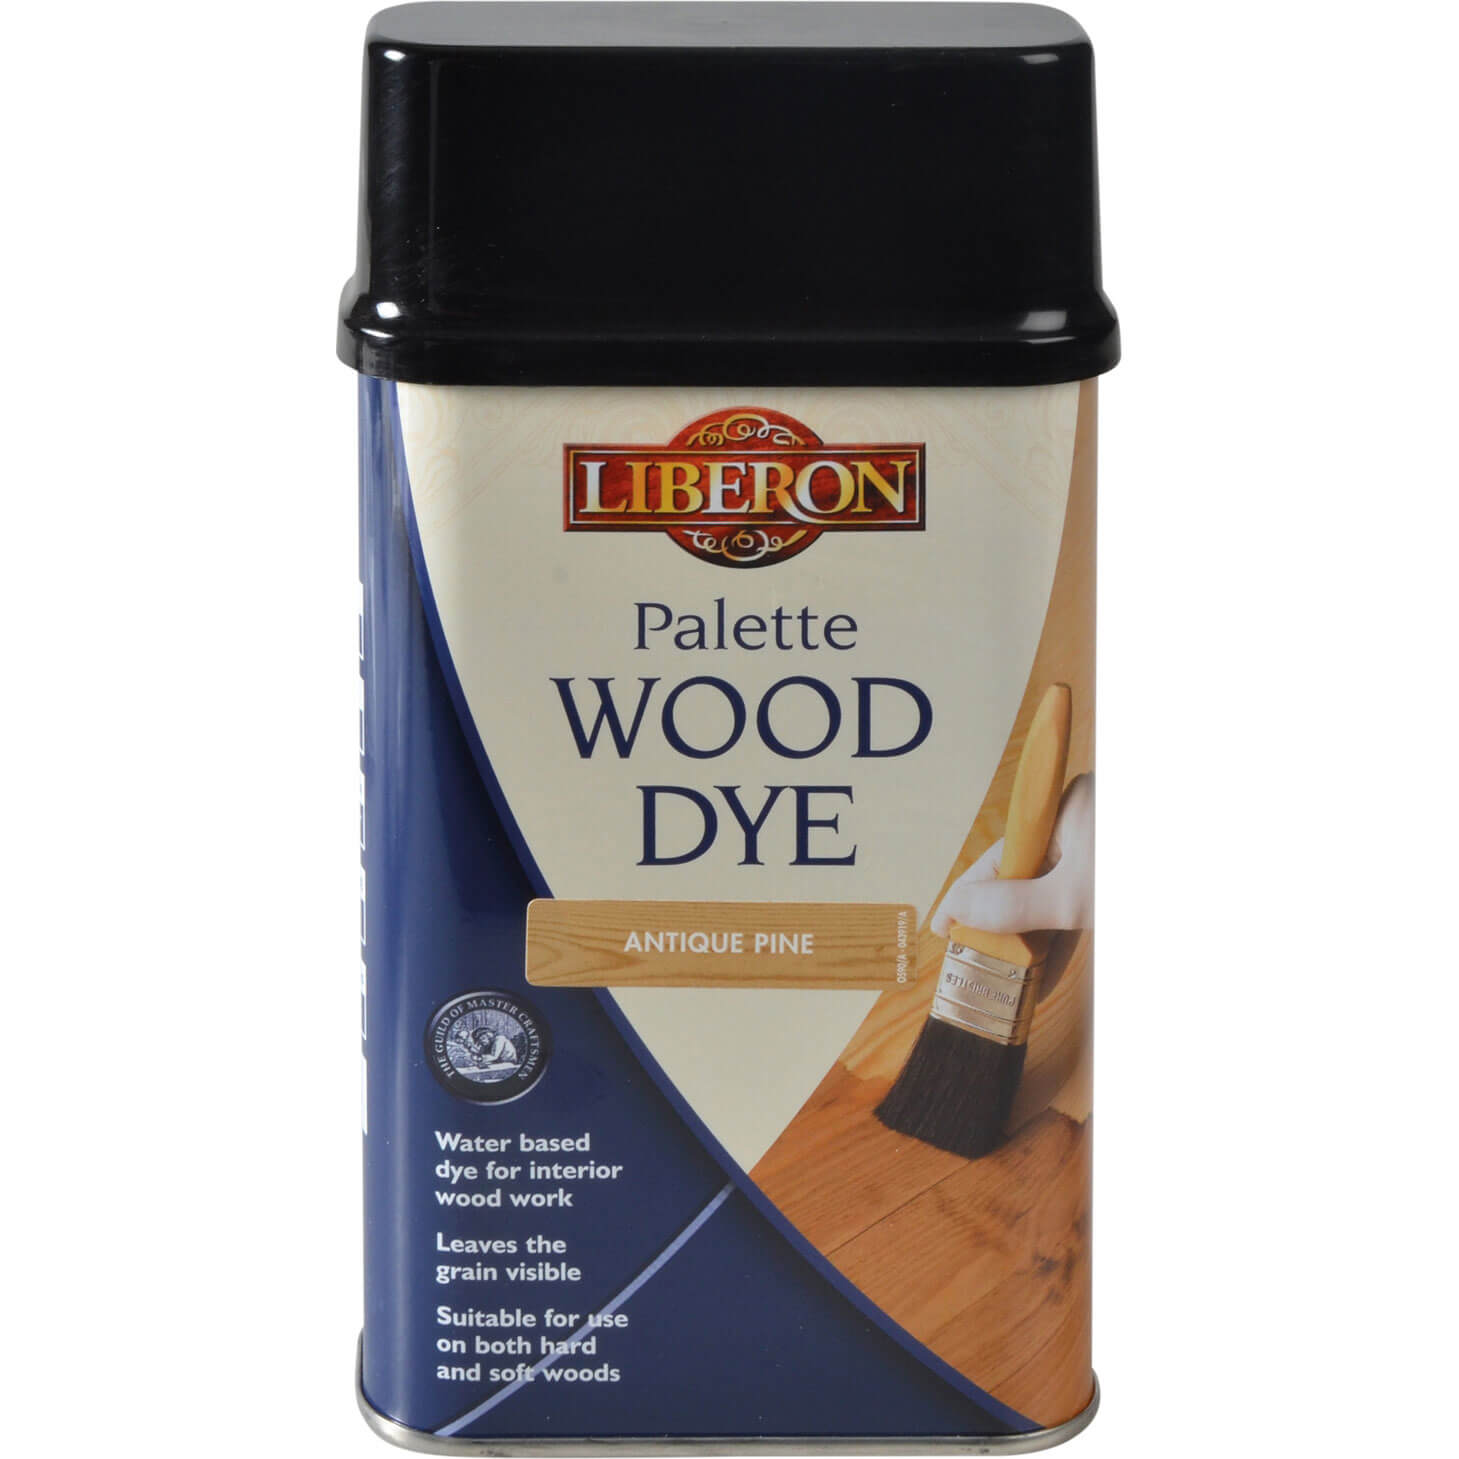 Image of Liberon Palette Wood Dye Antique Pine 500ml